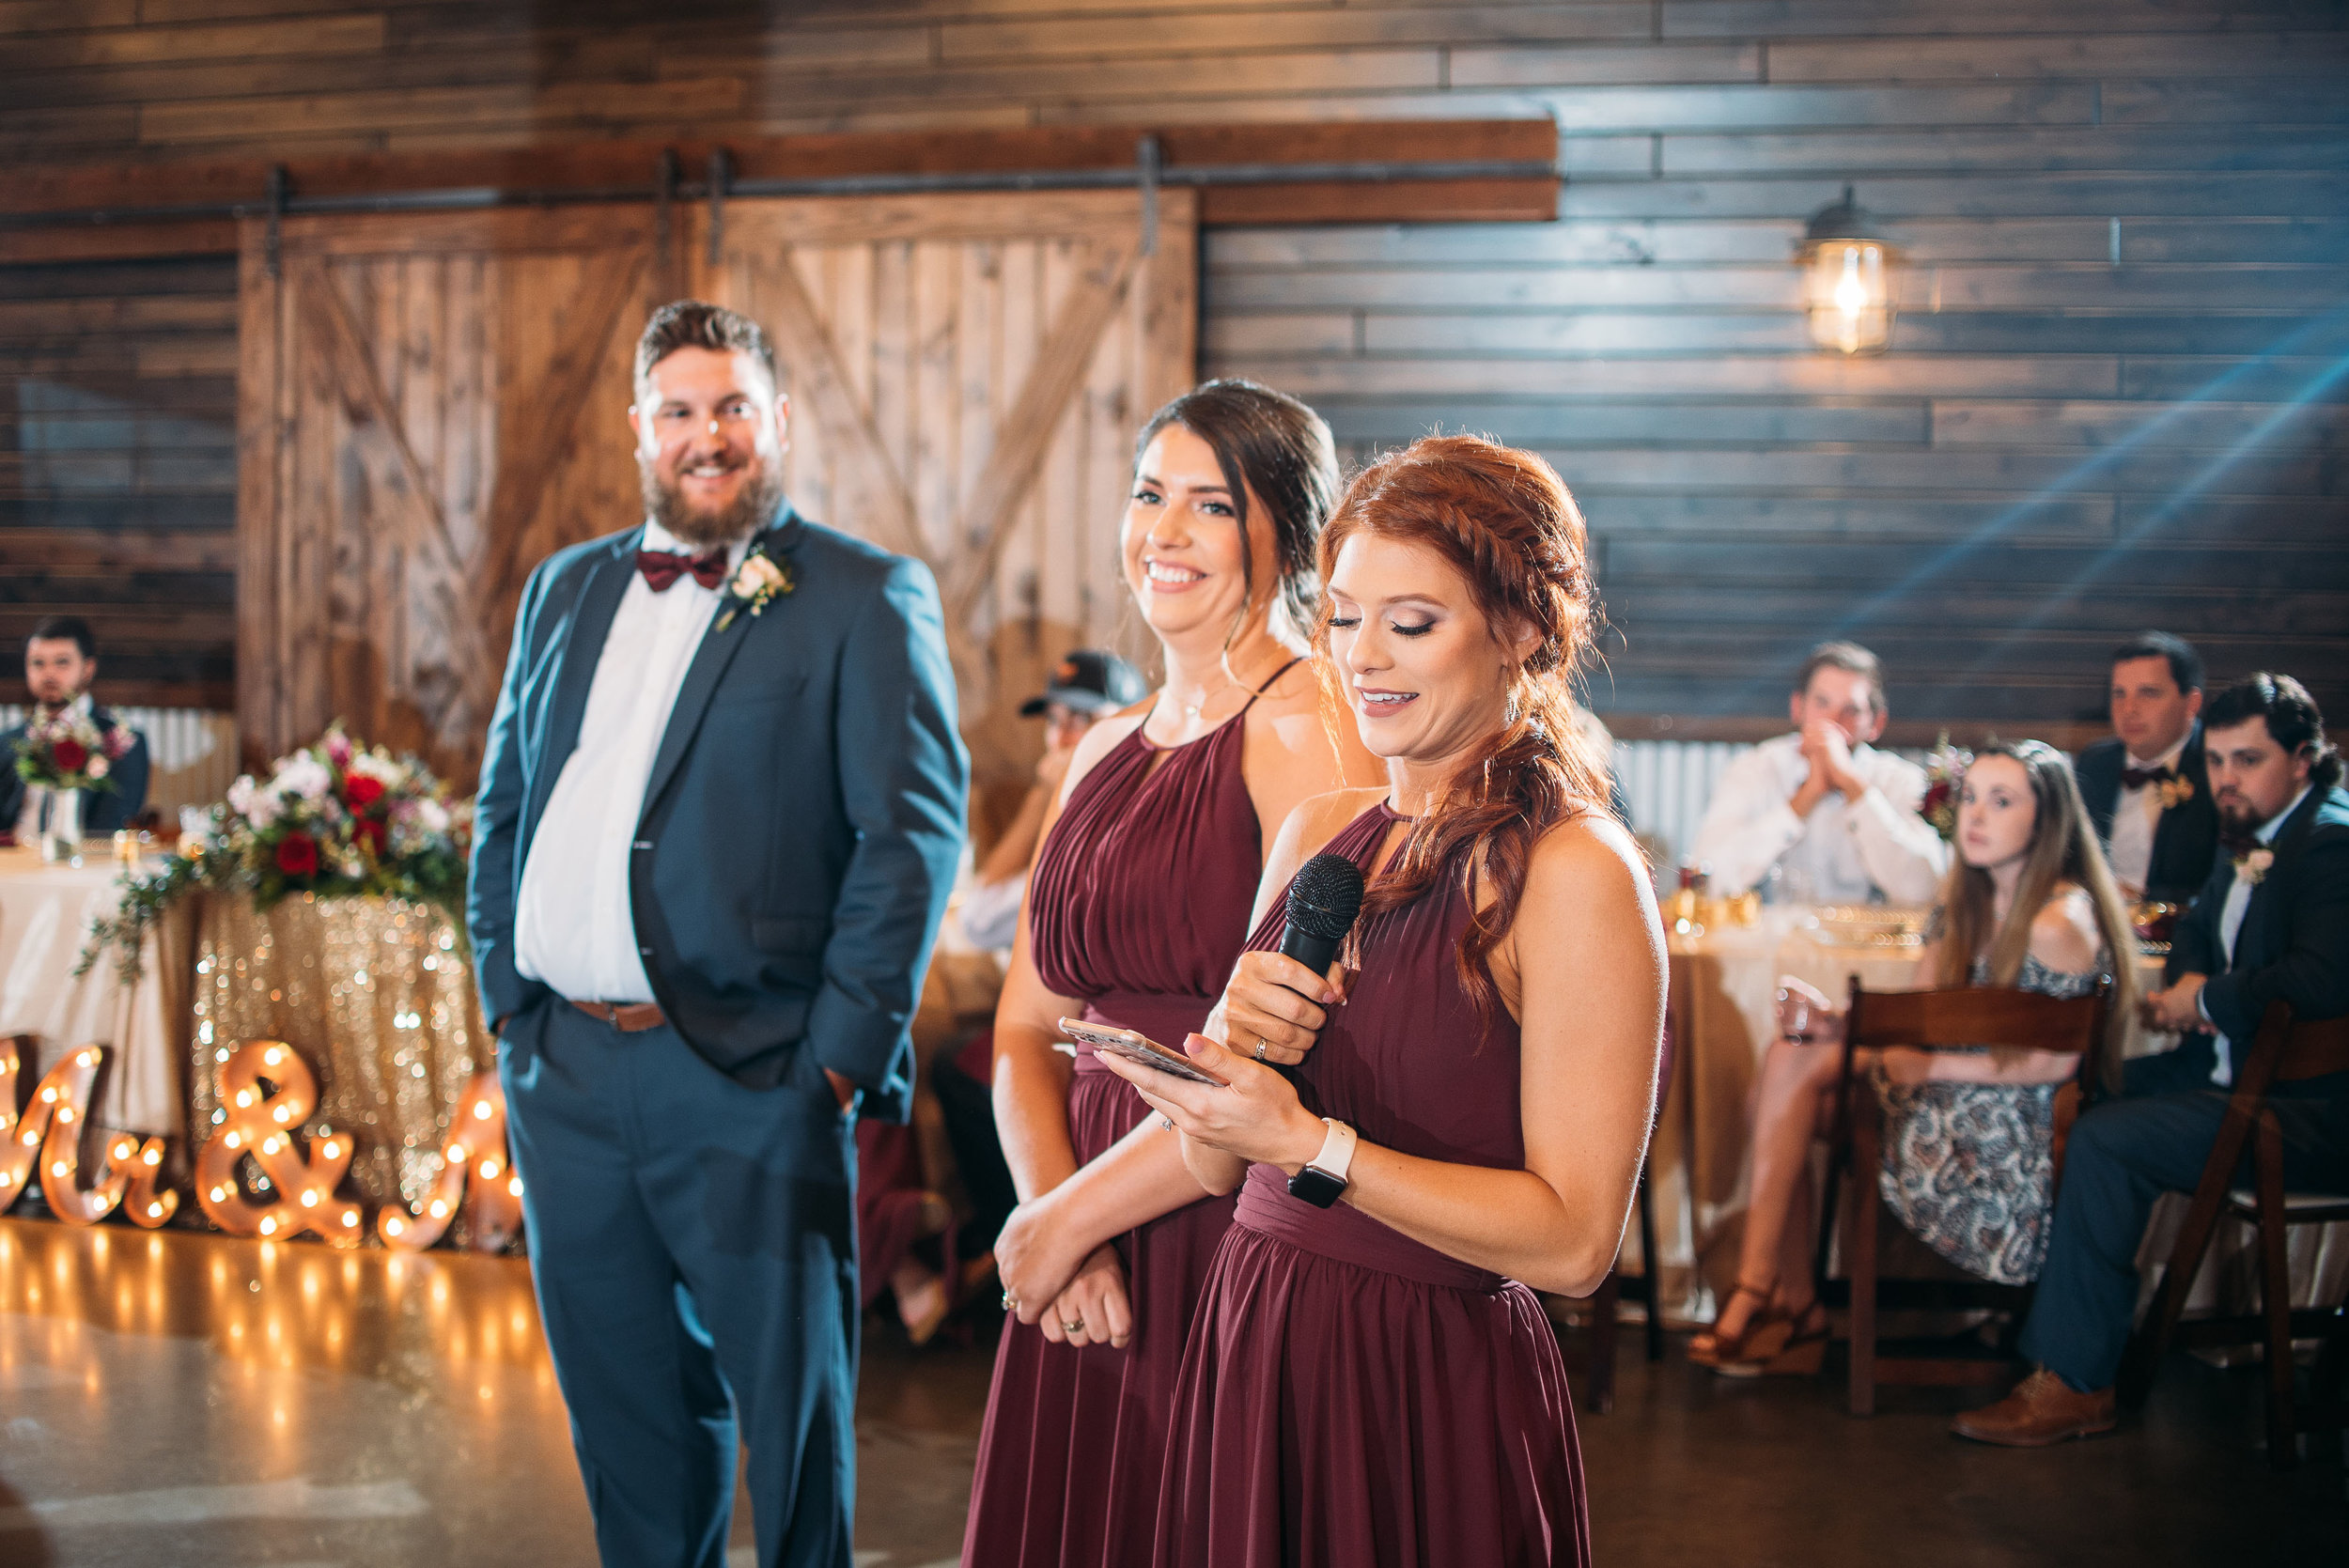 EmilyCody-Peach-Creek-Ranch-Wedding-Ceremony-Bridals-Engagement-College-Station-Photographer-Videographer-San-Angel-Photo-0215.jpg